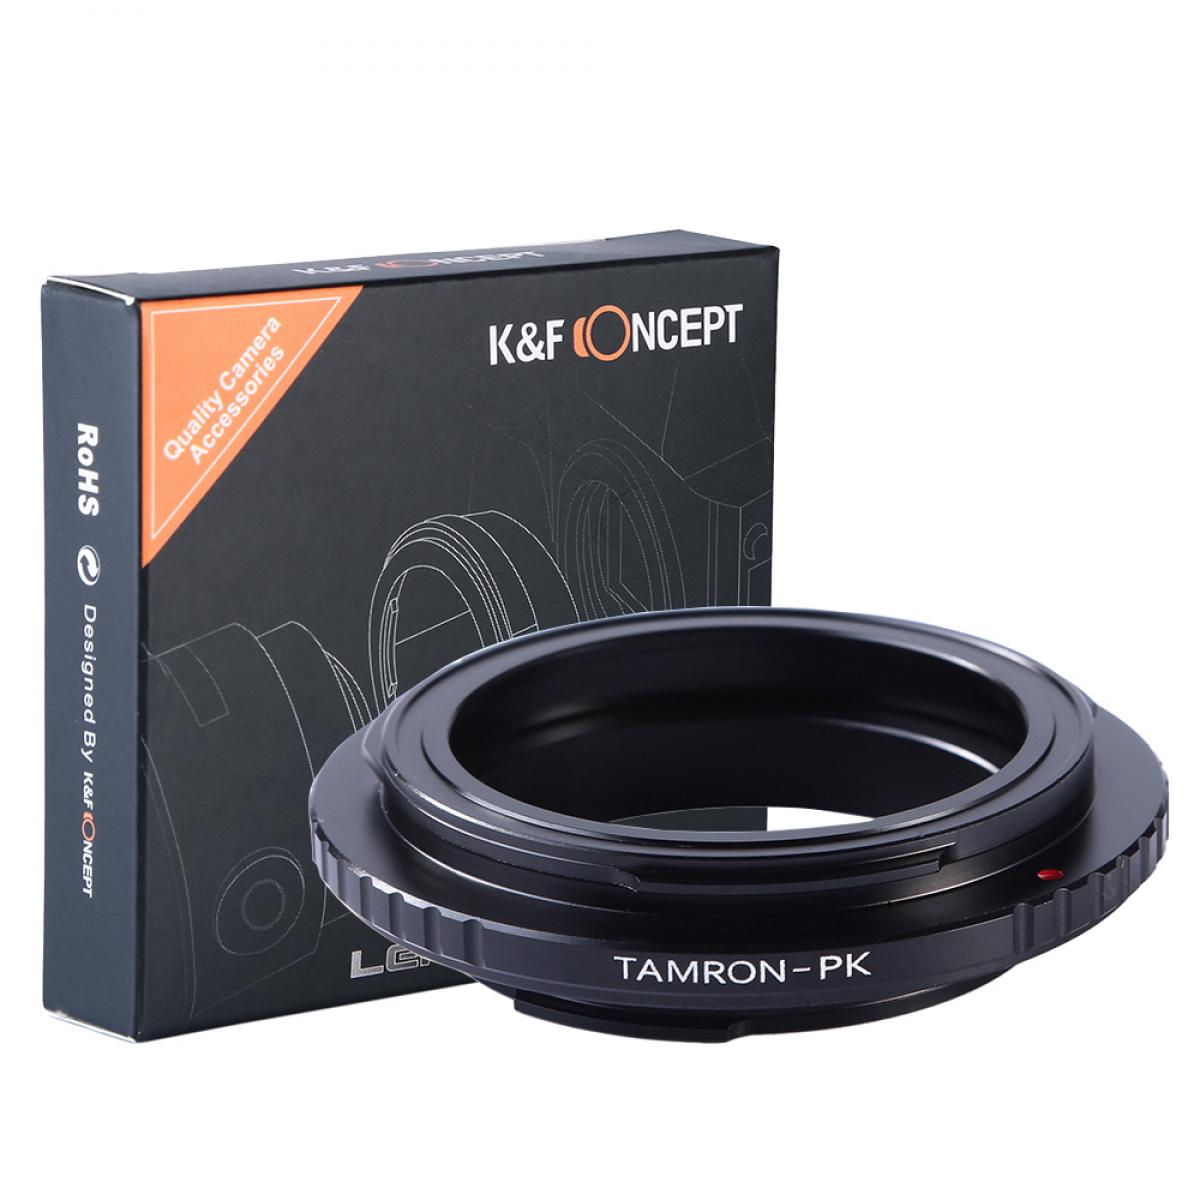 K&F M23221 Tamron Adaptall II  Lenses to Pentax K Lens Mount Adapter